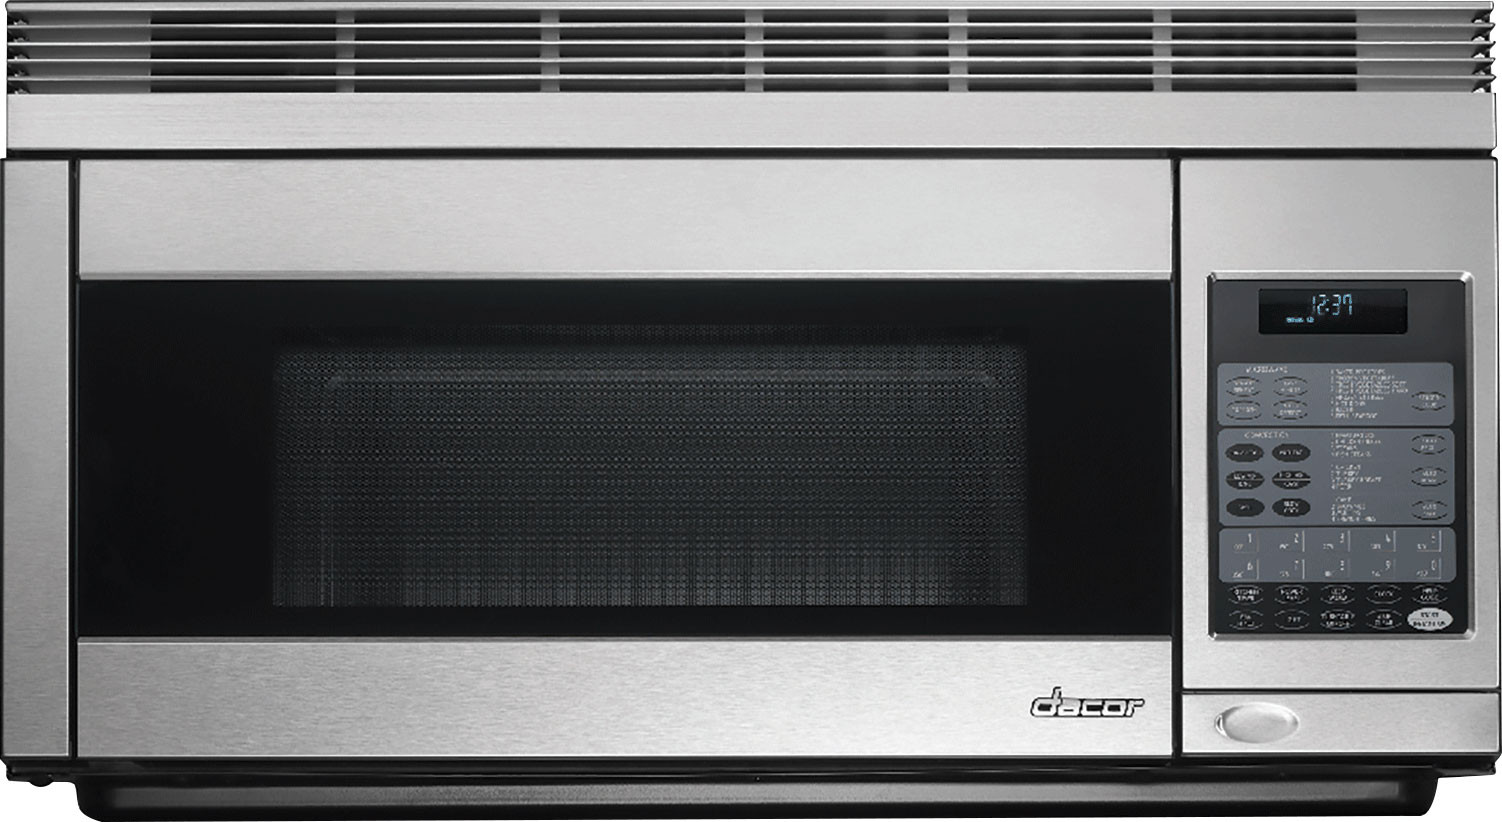 Dacor Pcor30s 1 1 Cu Ft Over The Range Convection